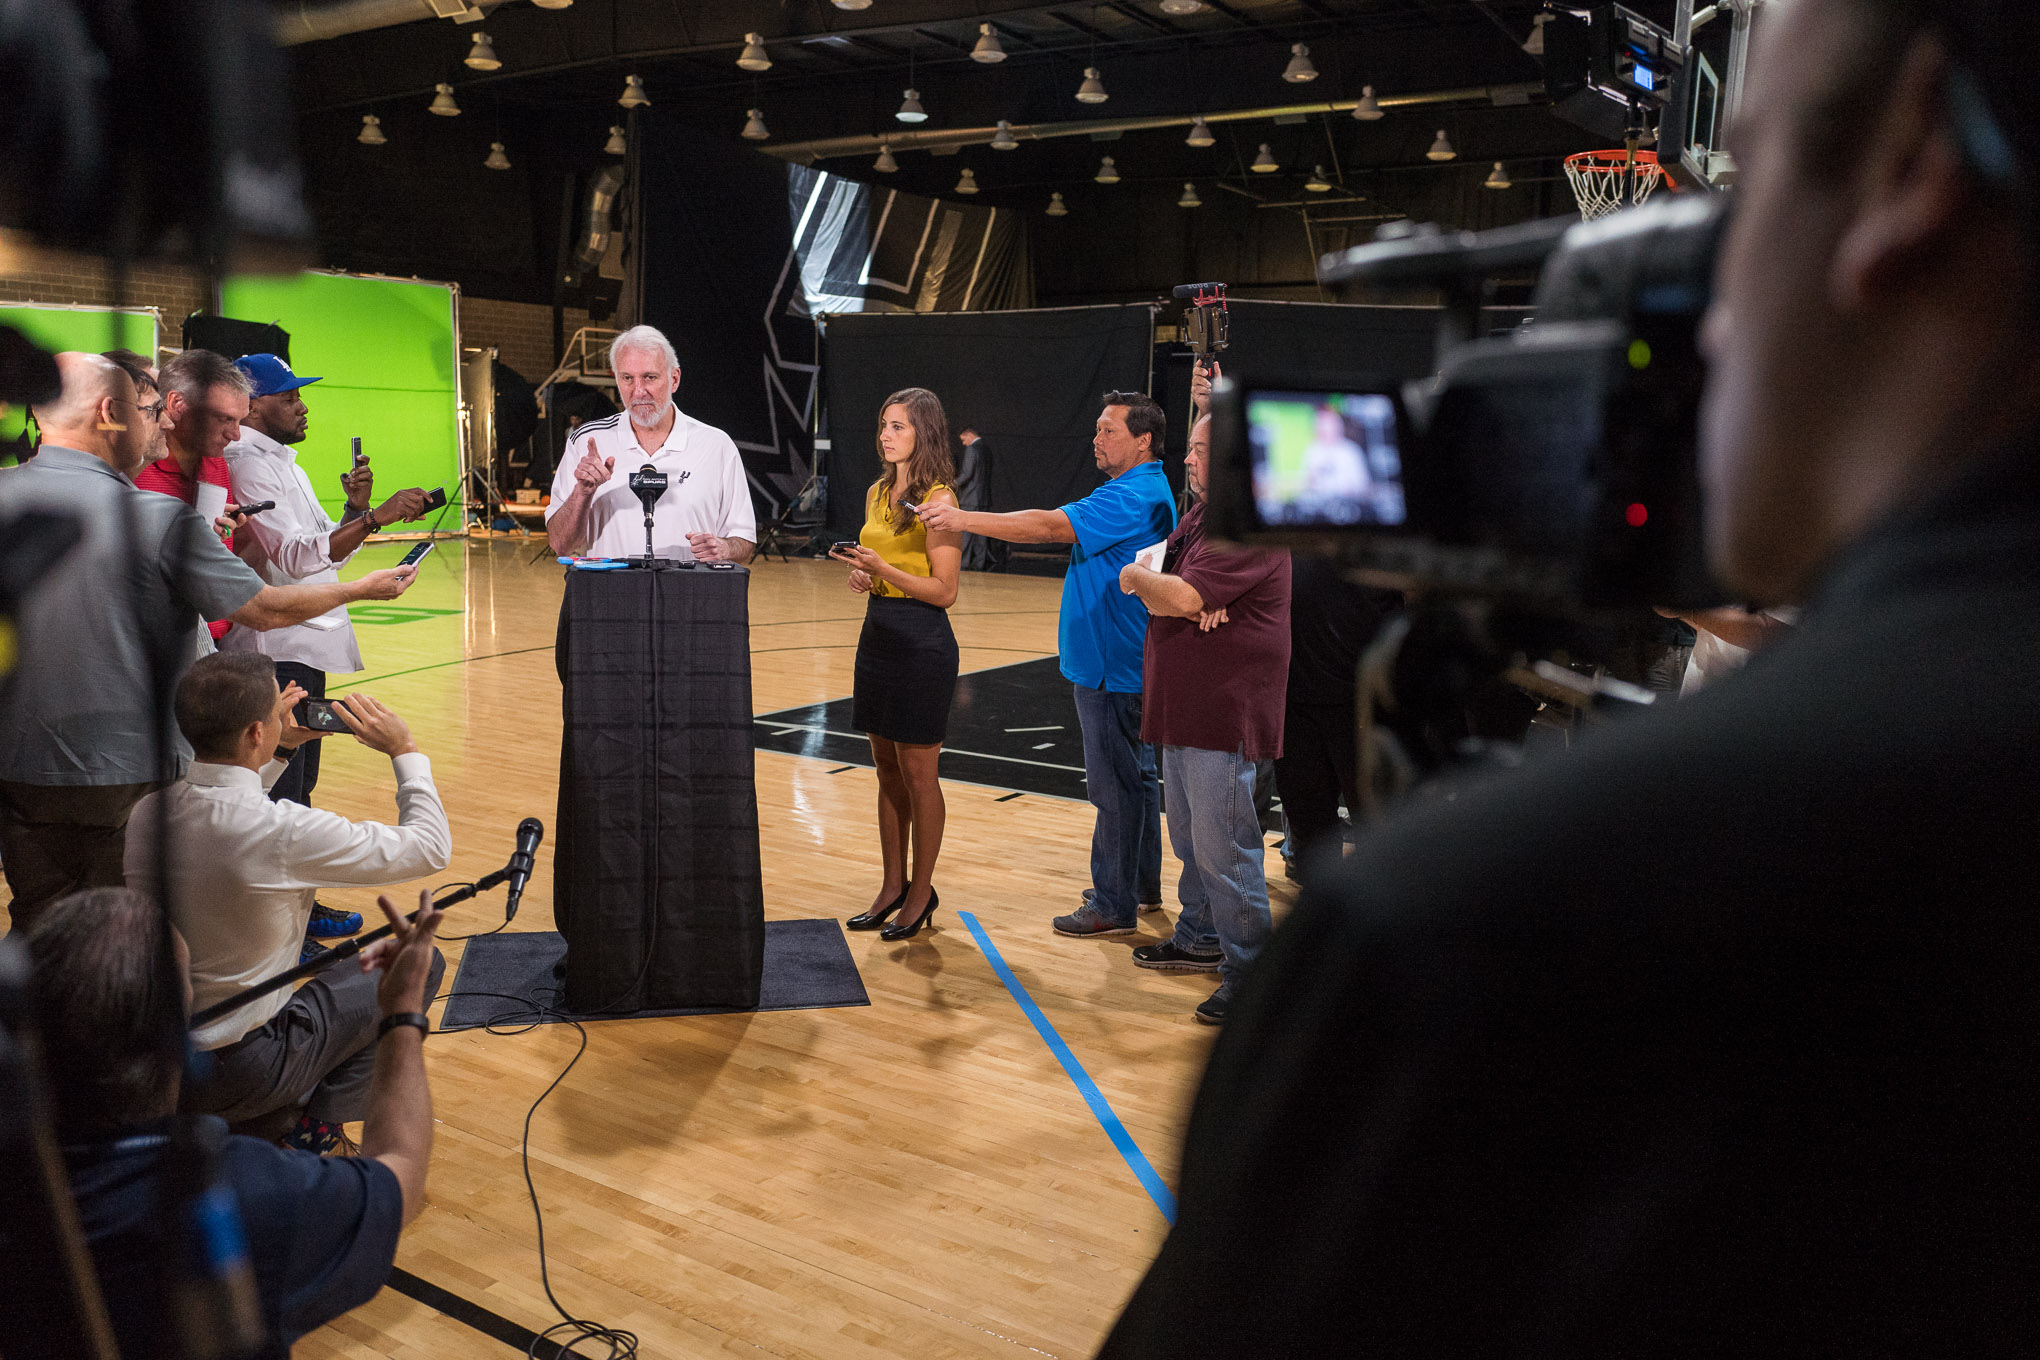 San Antonio Spurs Head Coach Gregg Popovich responds to a reporter during a press conference. Photo by Scott Ball.